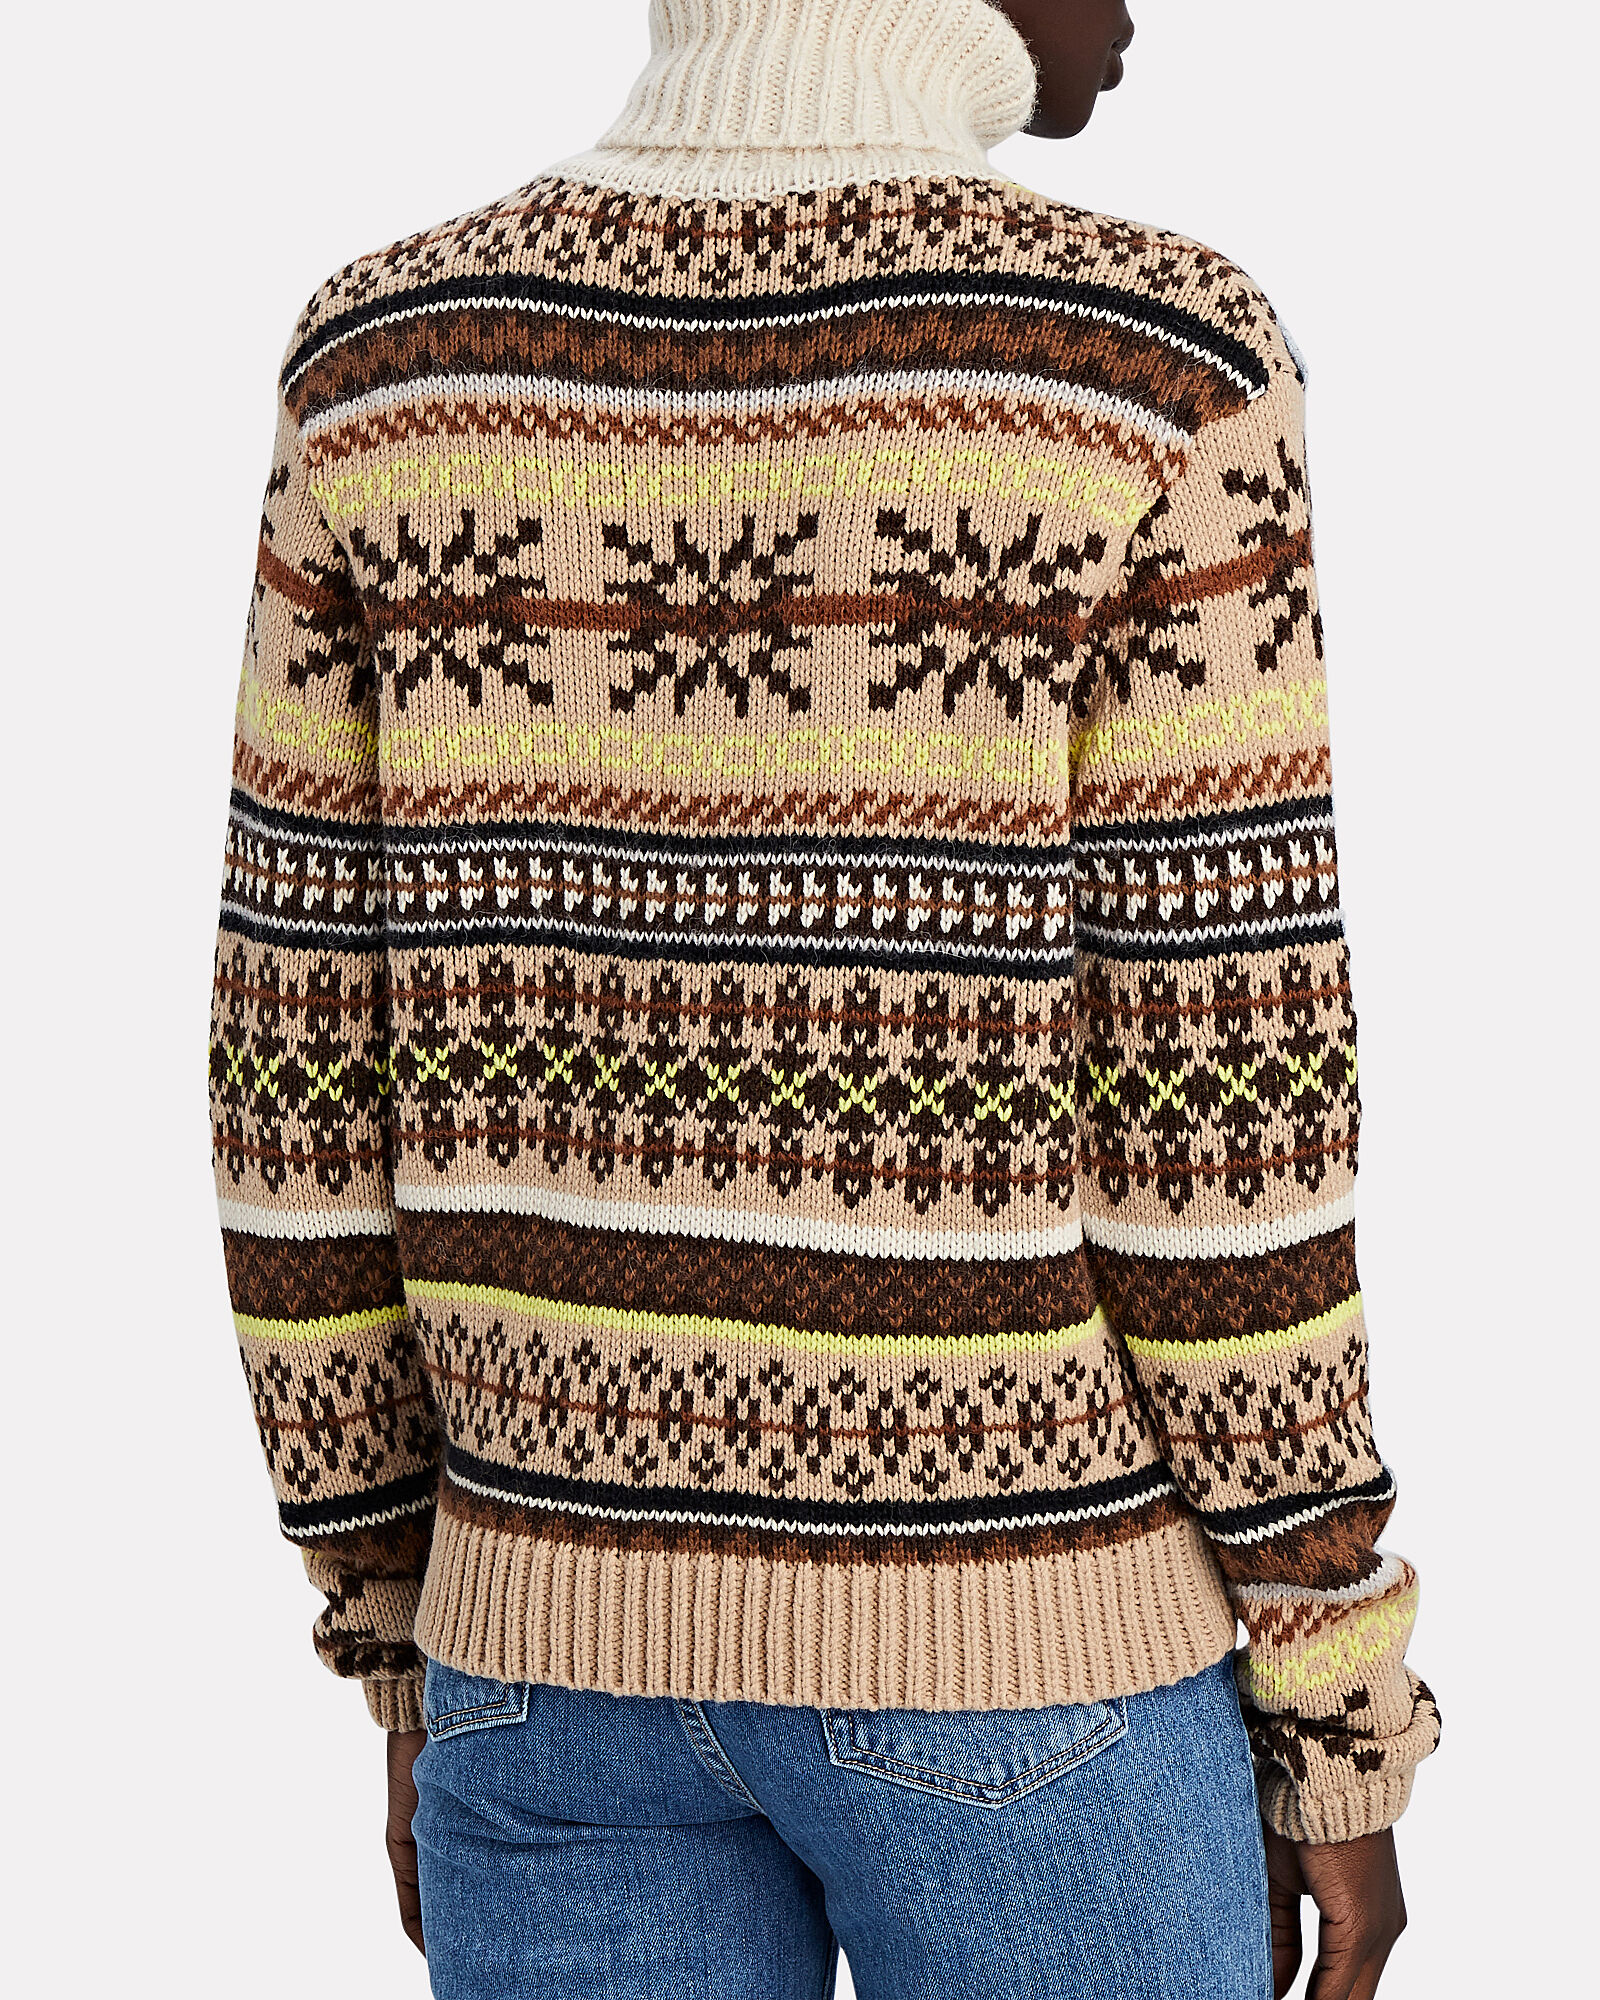 Creedance Fair Isle Turtleneck, BEIGE, hi-res